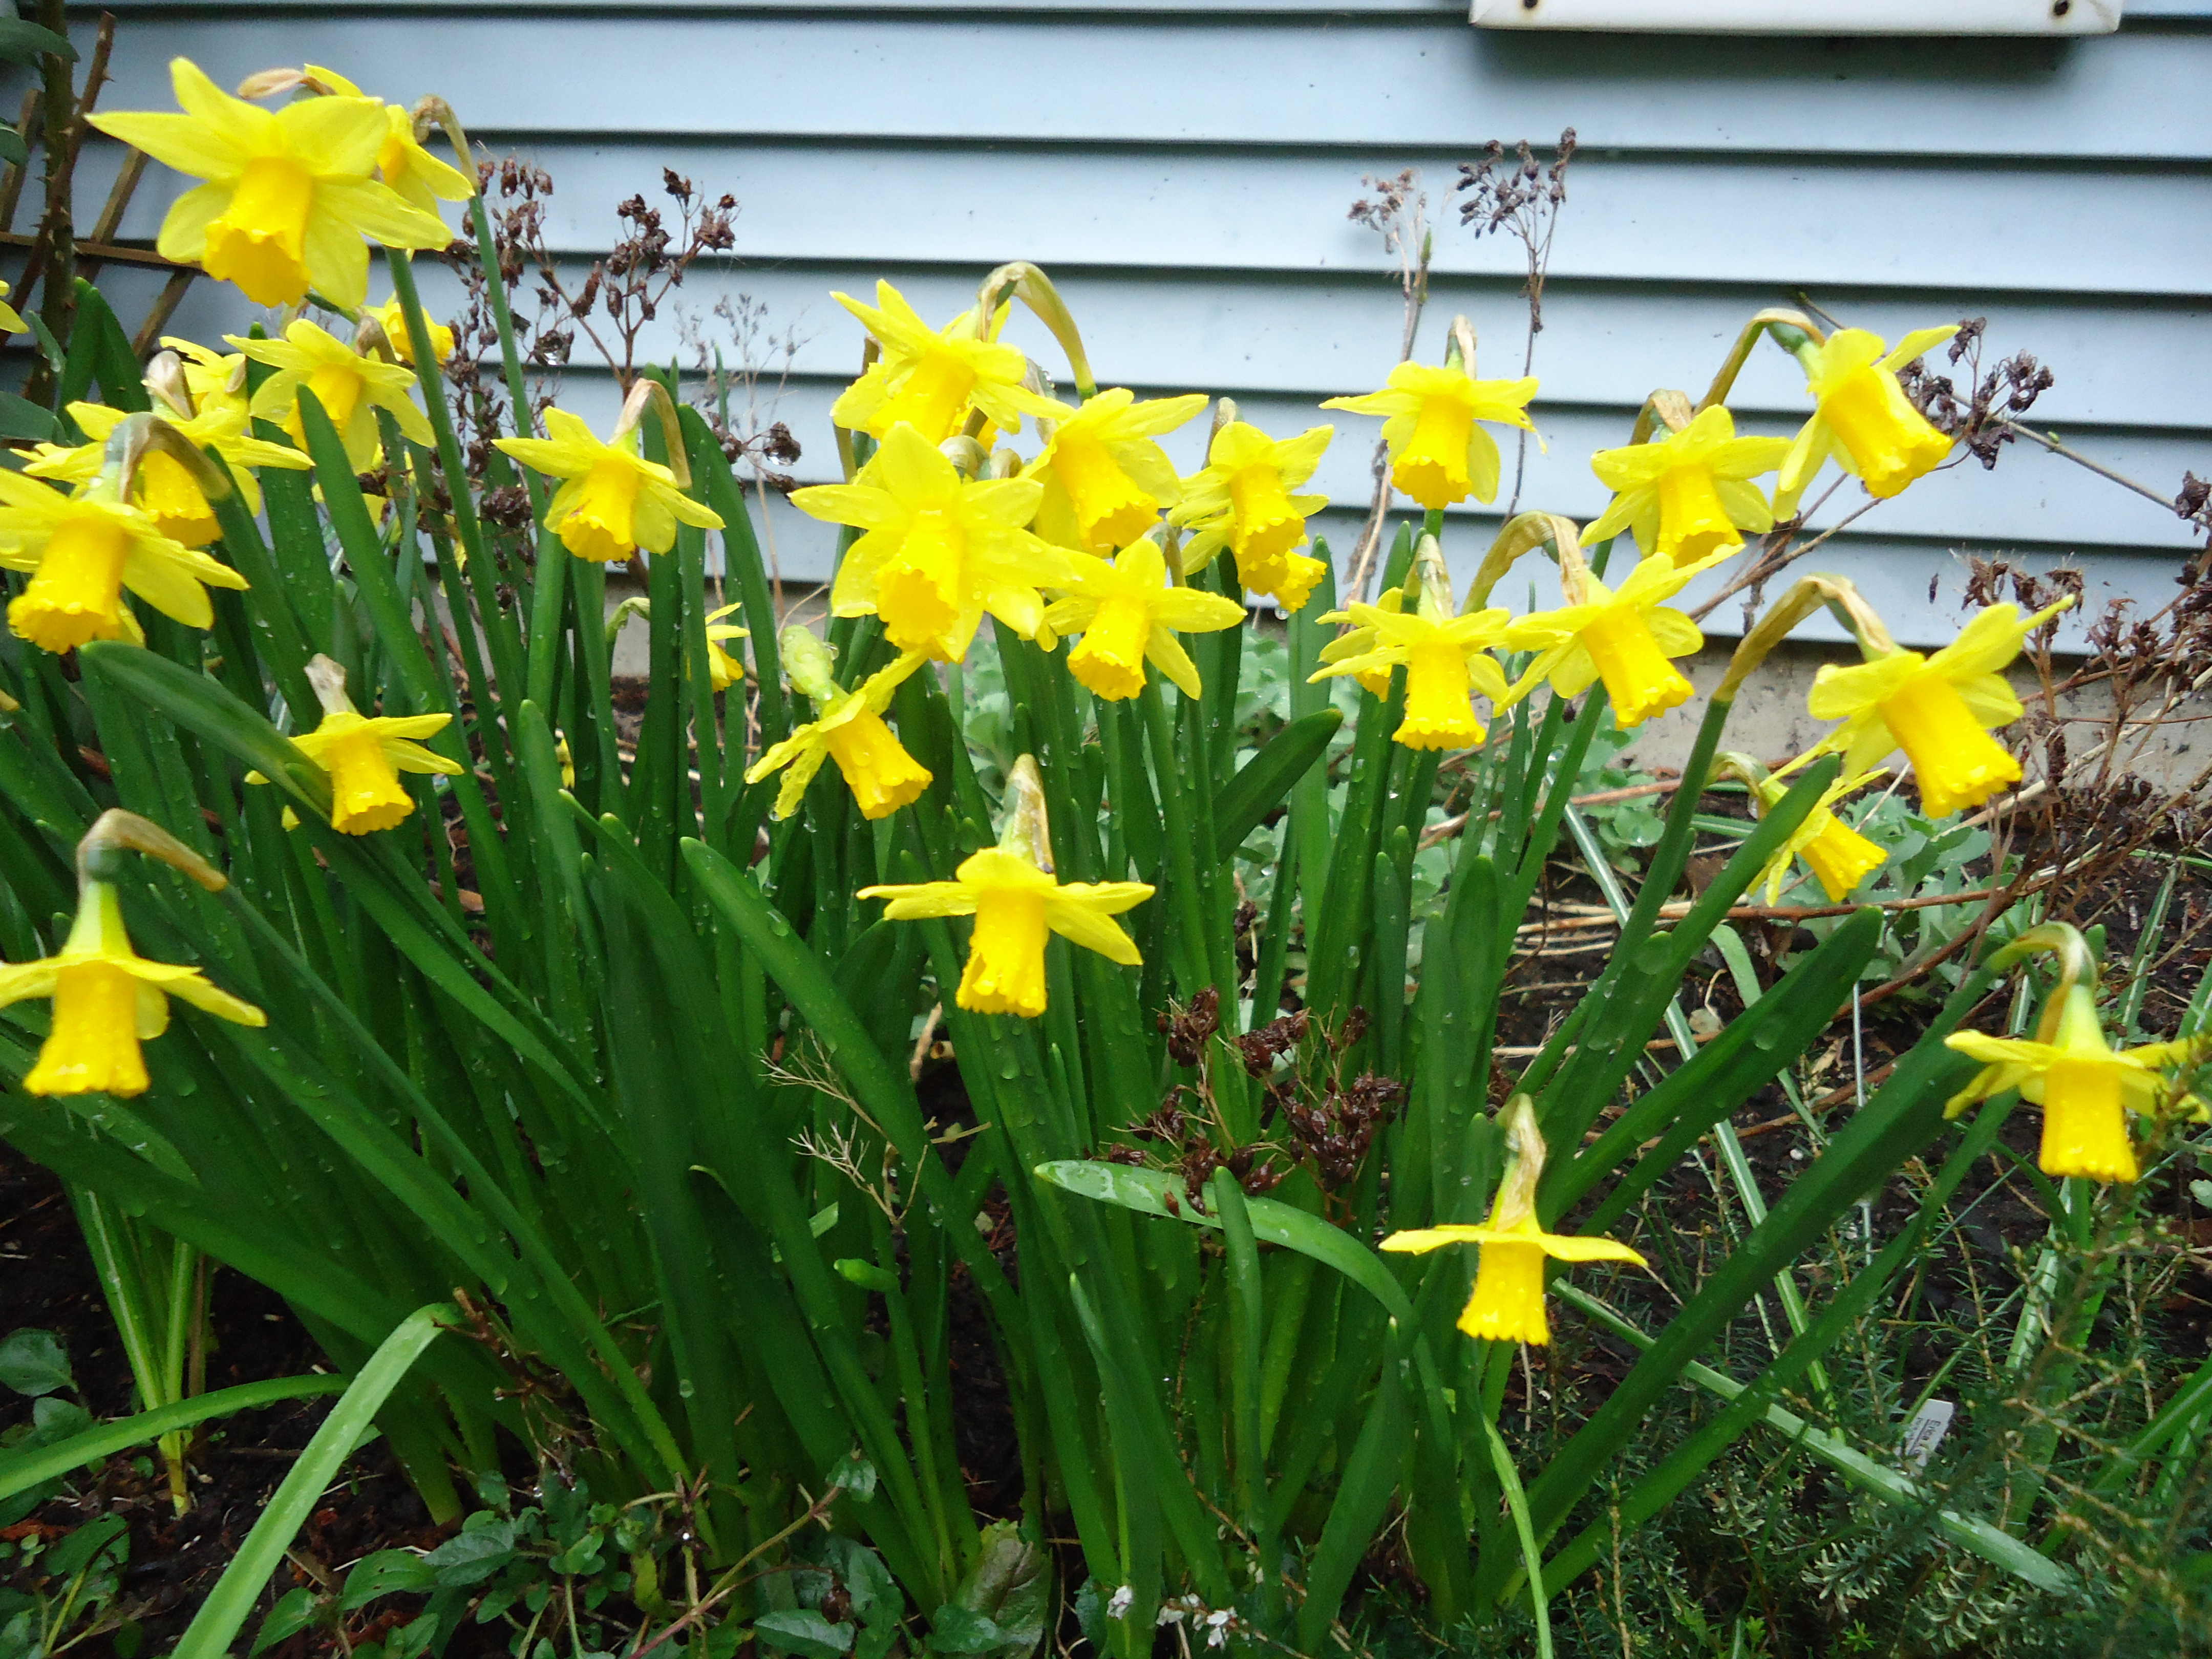 Its time to plan your spring garden that bloomin garden the bees love this plant plant bulbs in groups for visual impact over the years the crocuses will naturalize and come back stronger every year mightylinksfo